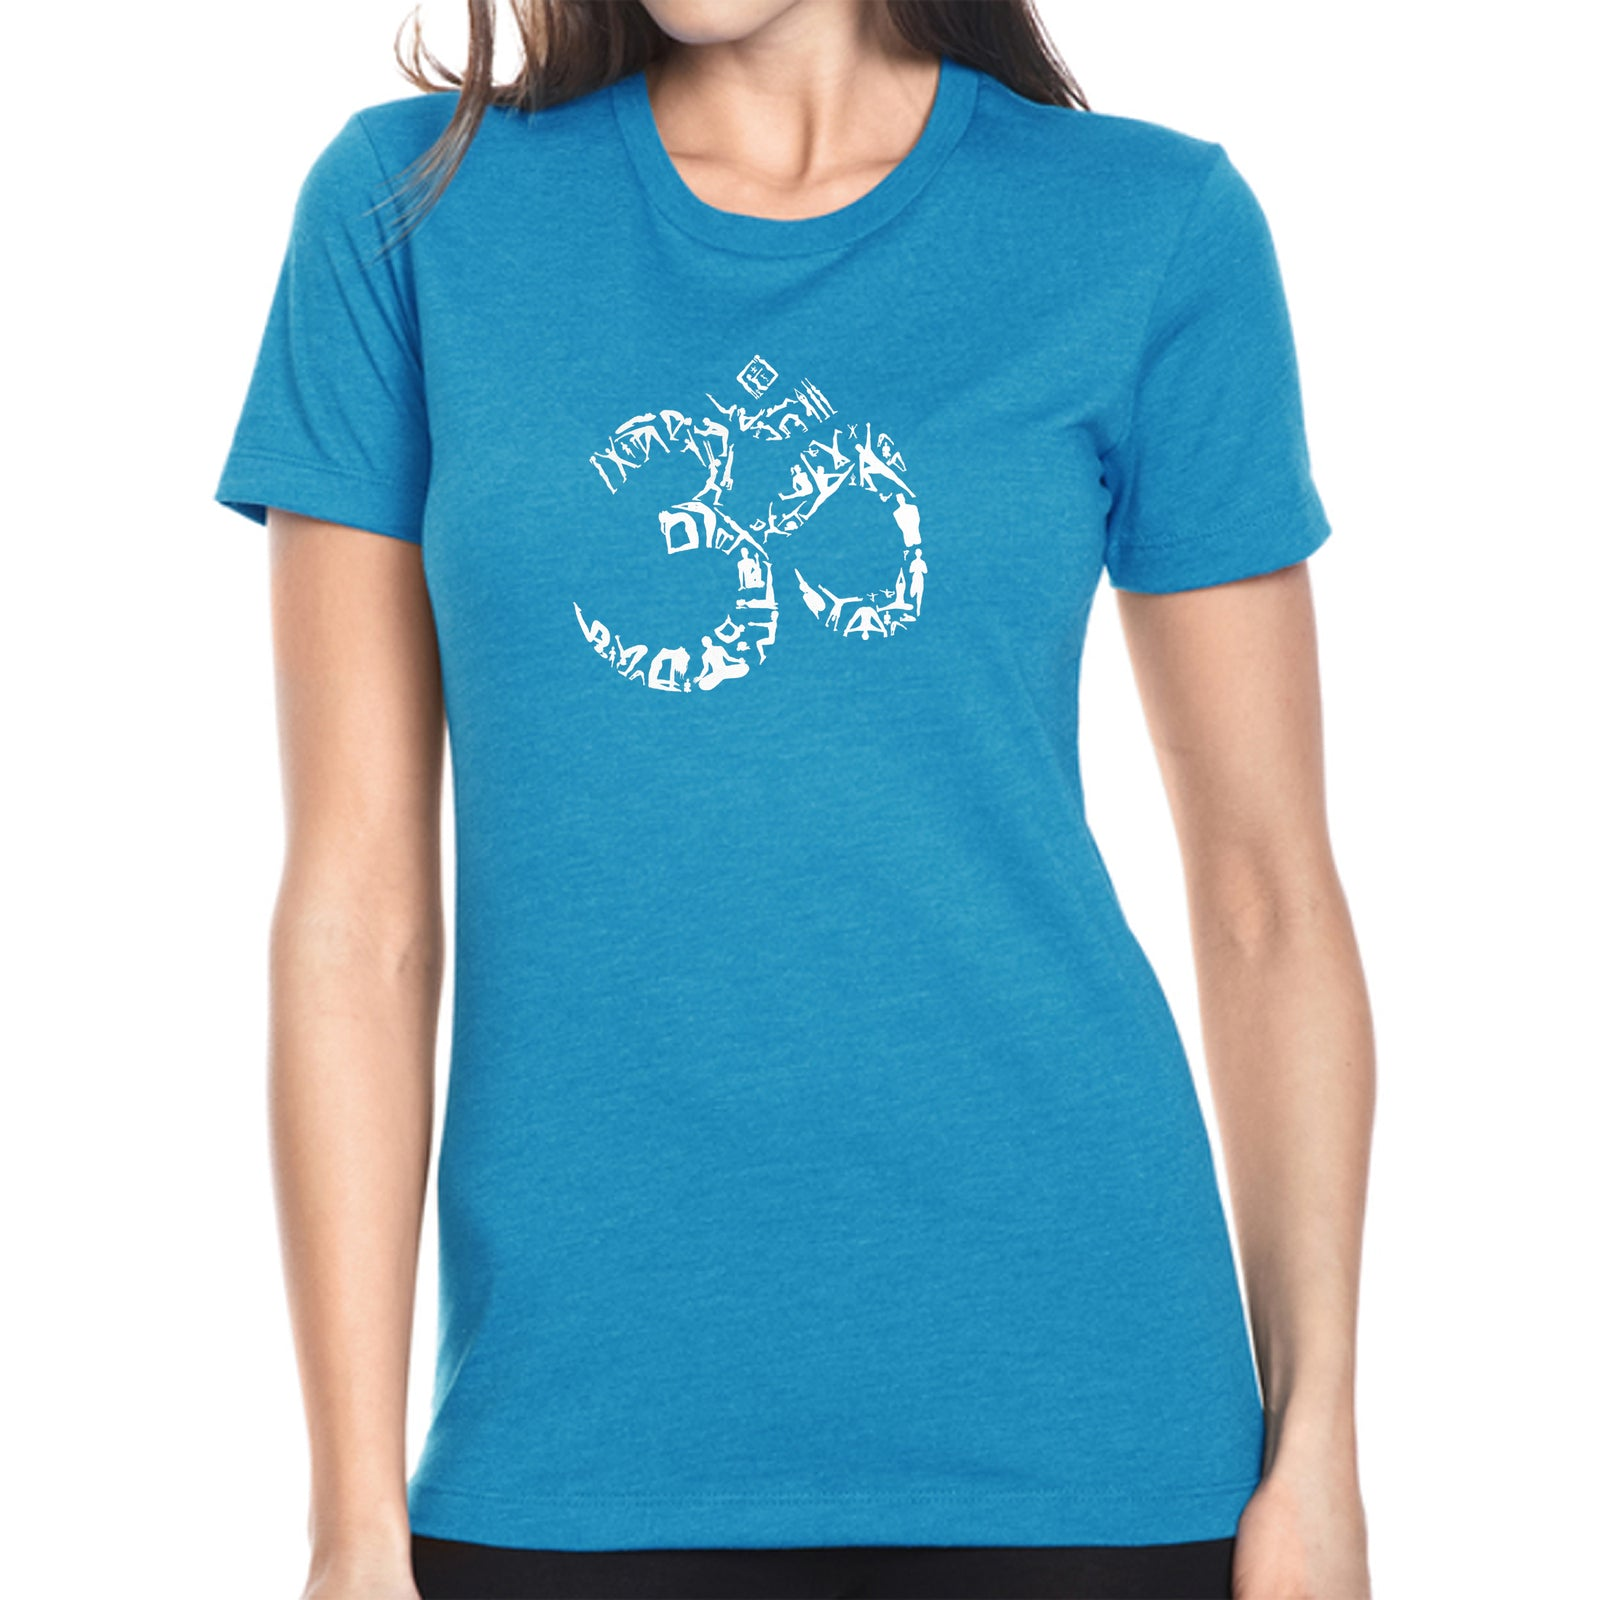 Women's Premium Blend Word Art T-shirt - THE OM SYMBOL OUT OF YOGA POSES